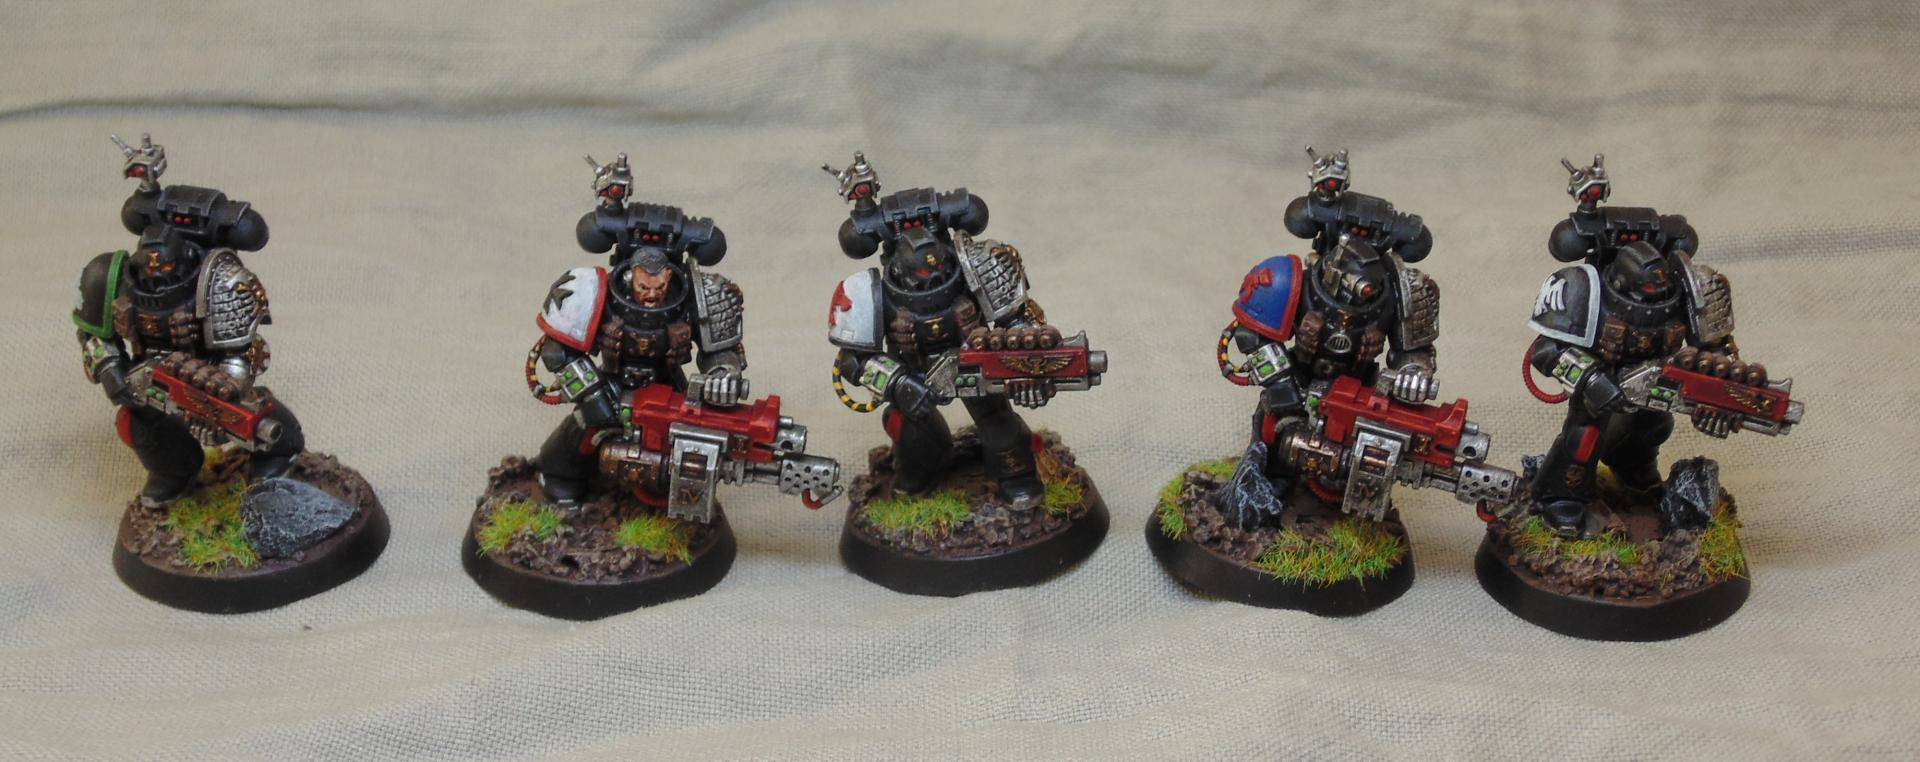 Escouade killteam 1